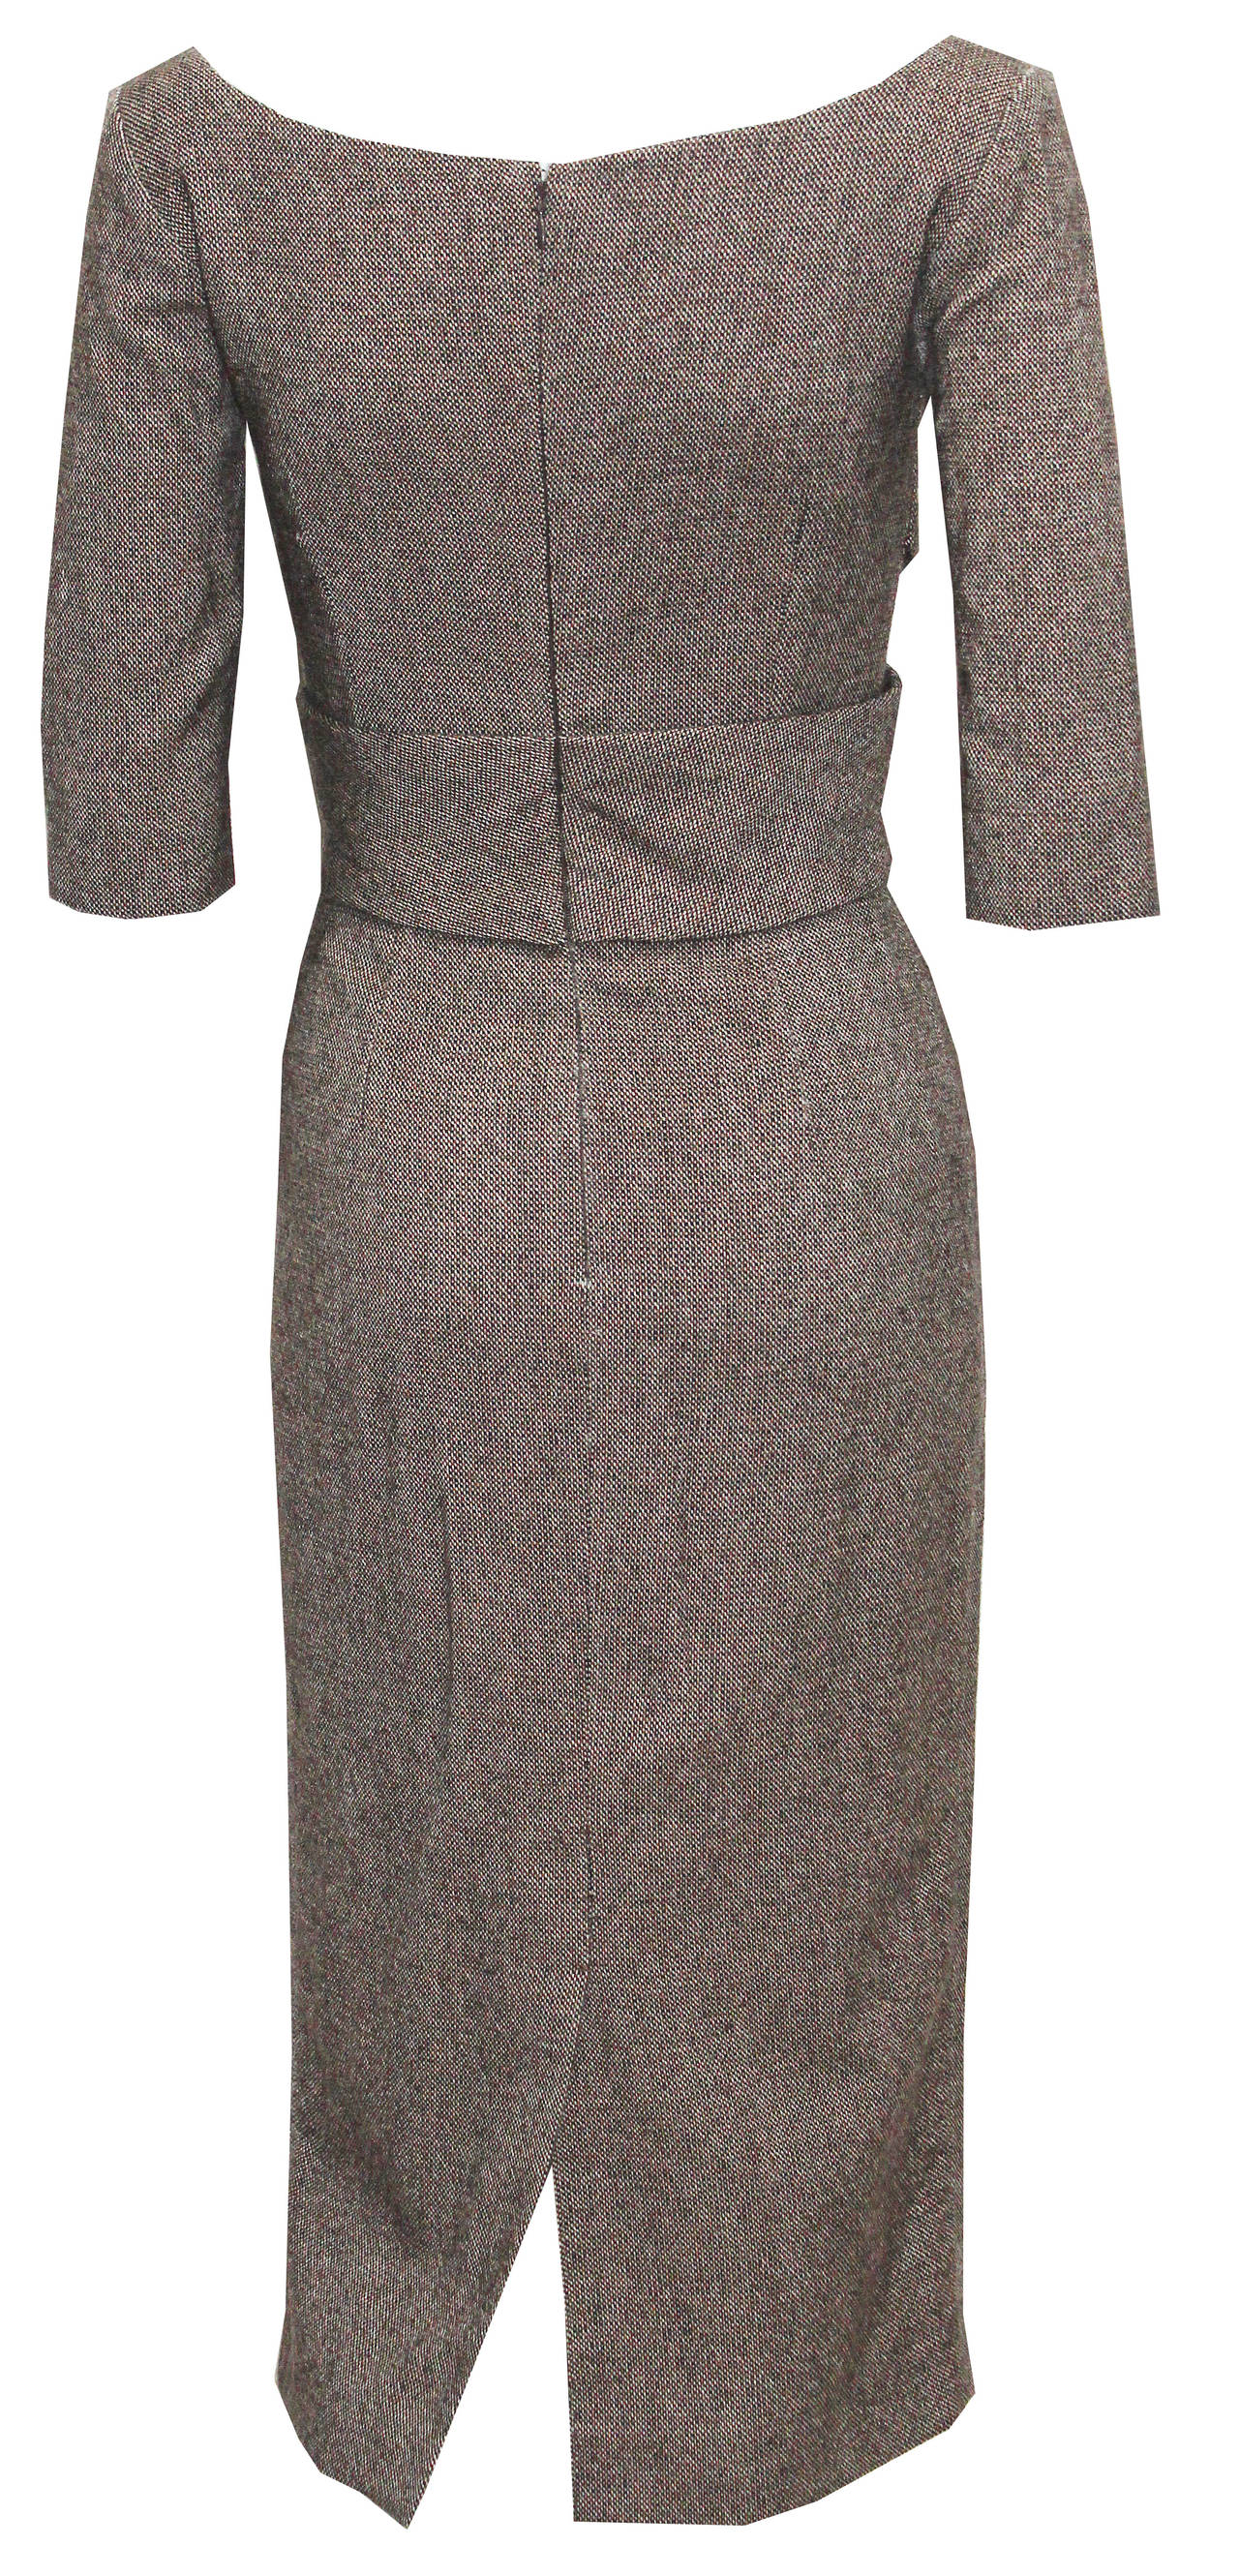 Alexander McQueen Runway Pin-up 50s inspired dress (Autumn/Winter 2005) In Excellent Condition For Sale In London, GB